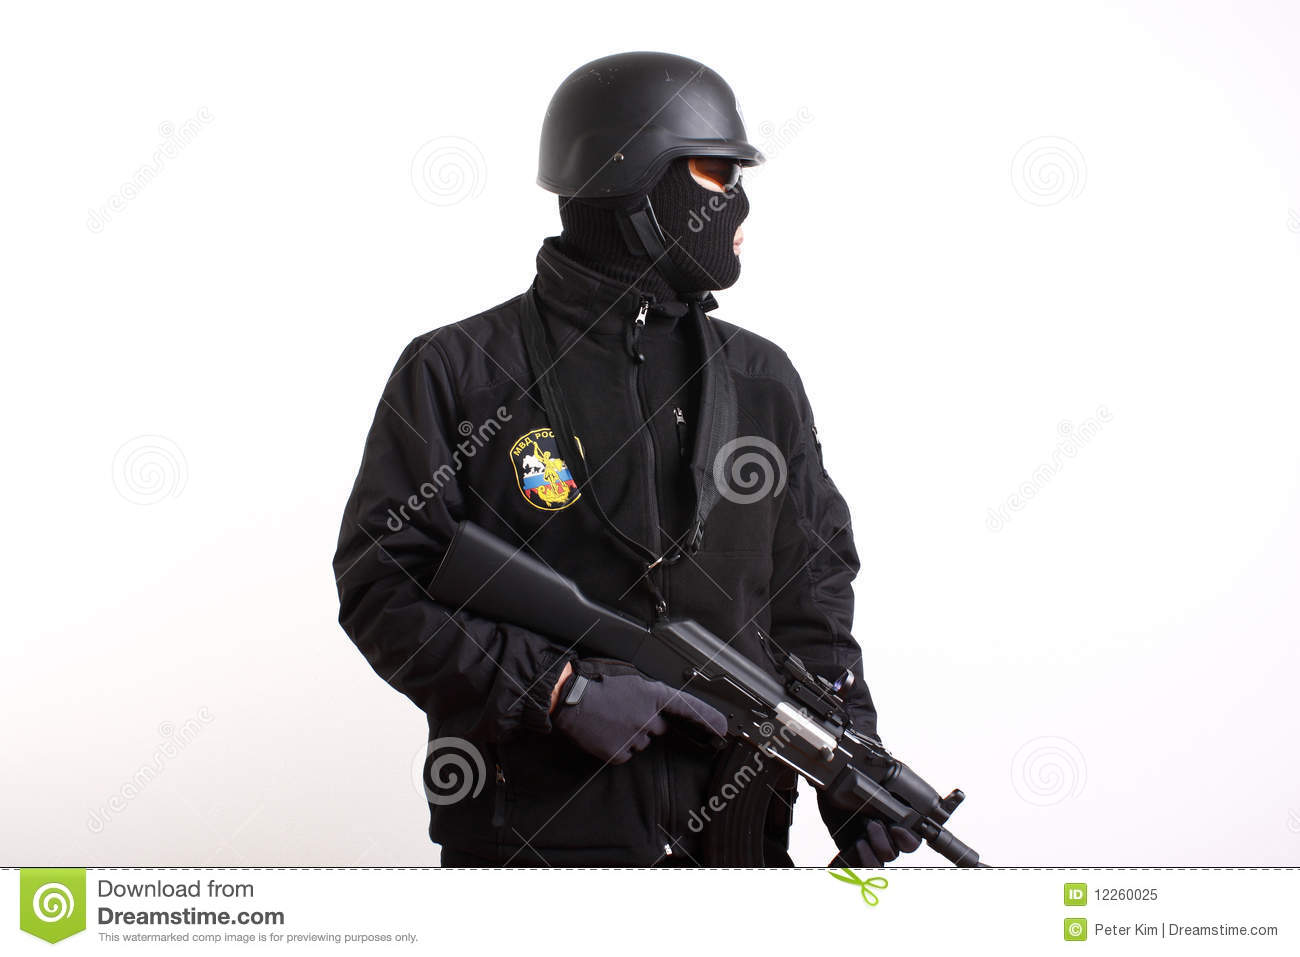 Russian Federation Police officer